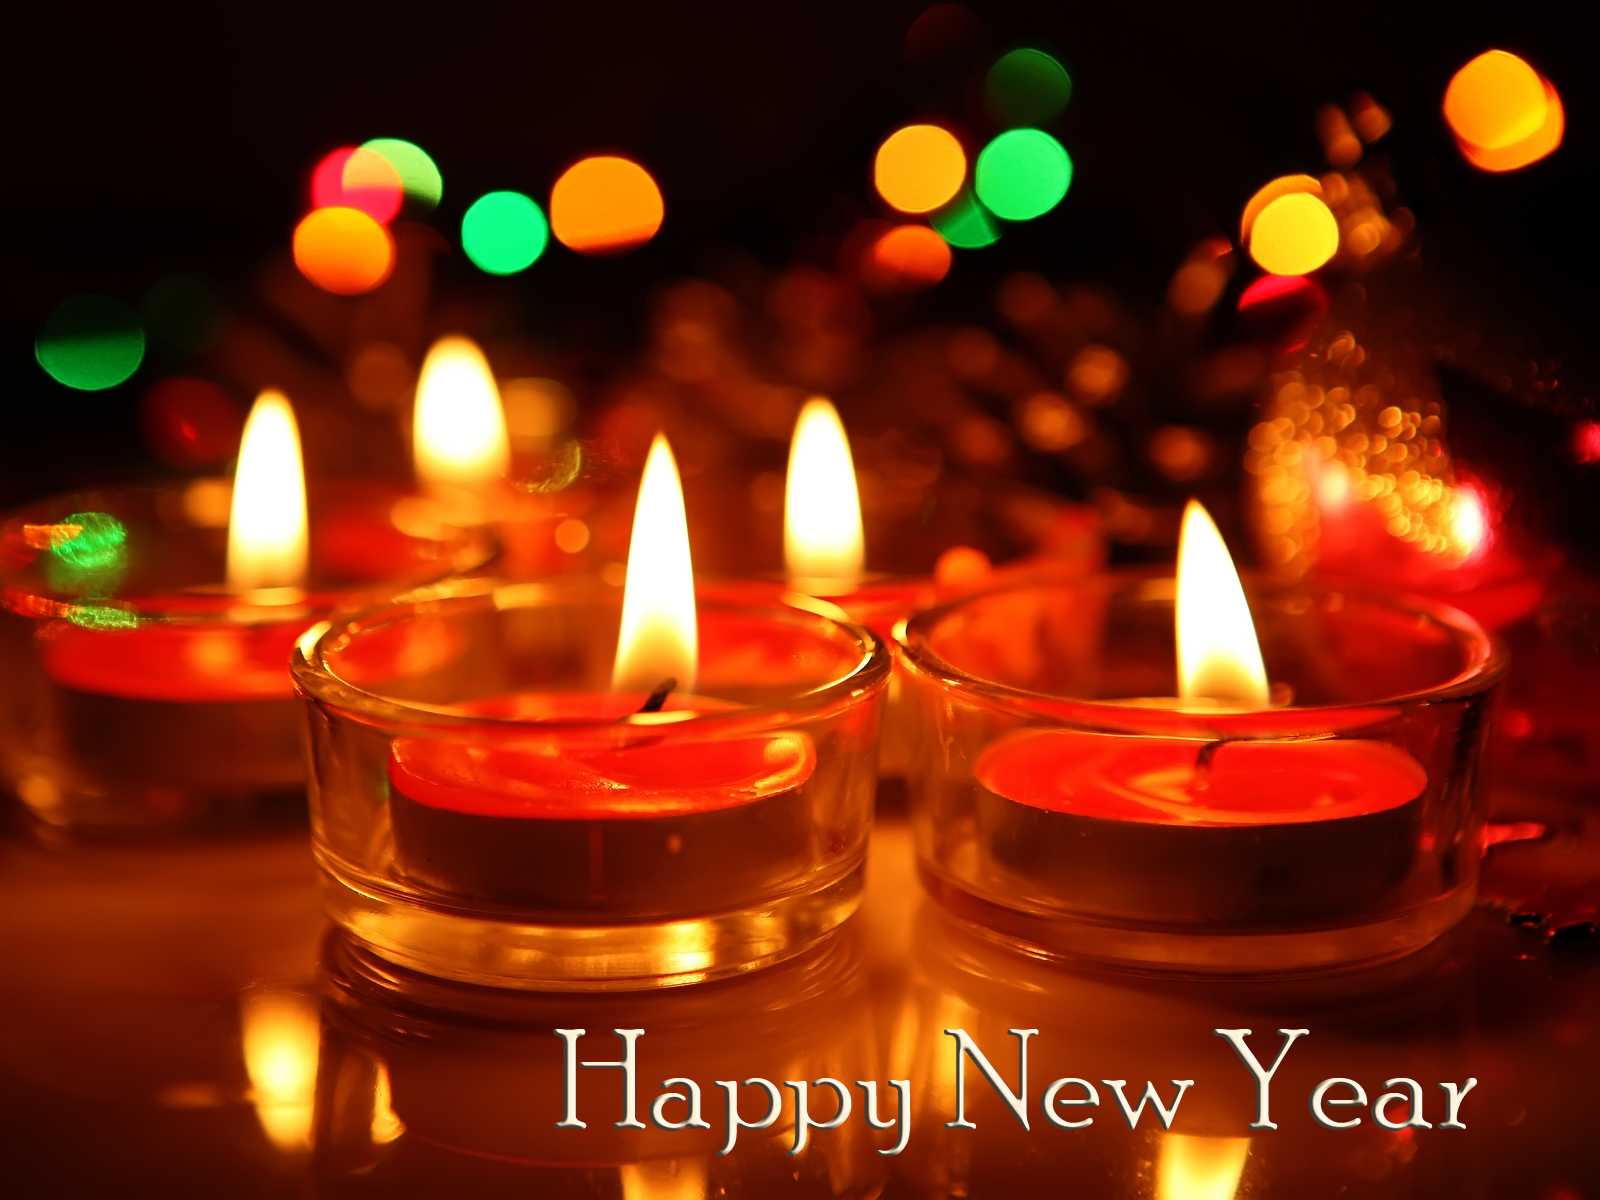 1480491292_637_happy-new-year-images